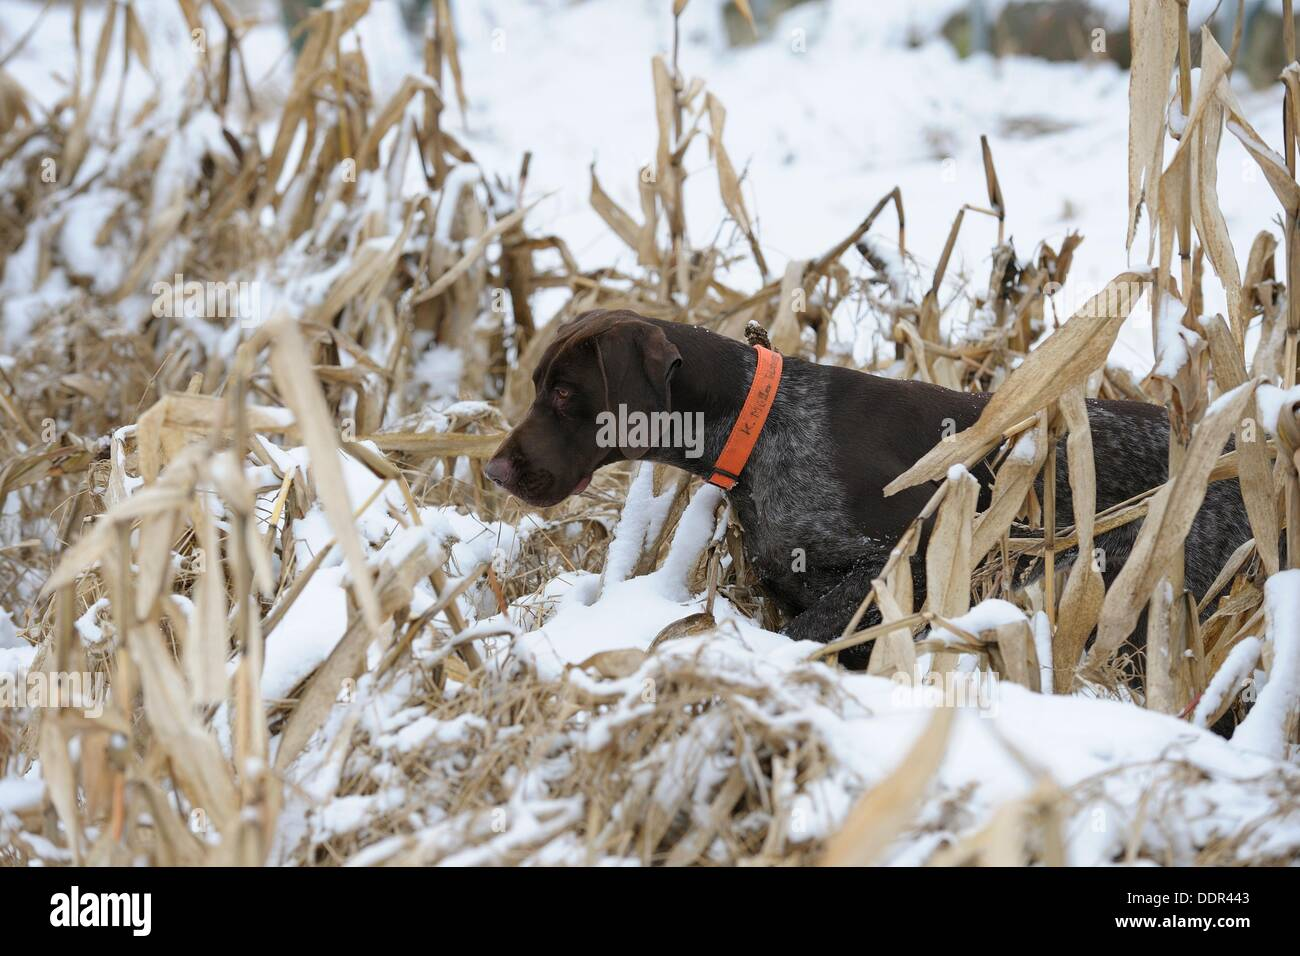 Hound (German shorthaired)in winter, Germany - Stock Image